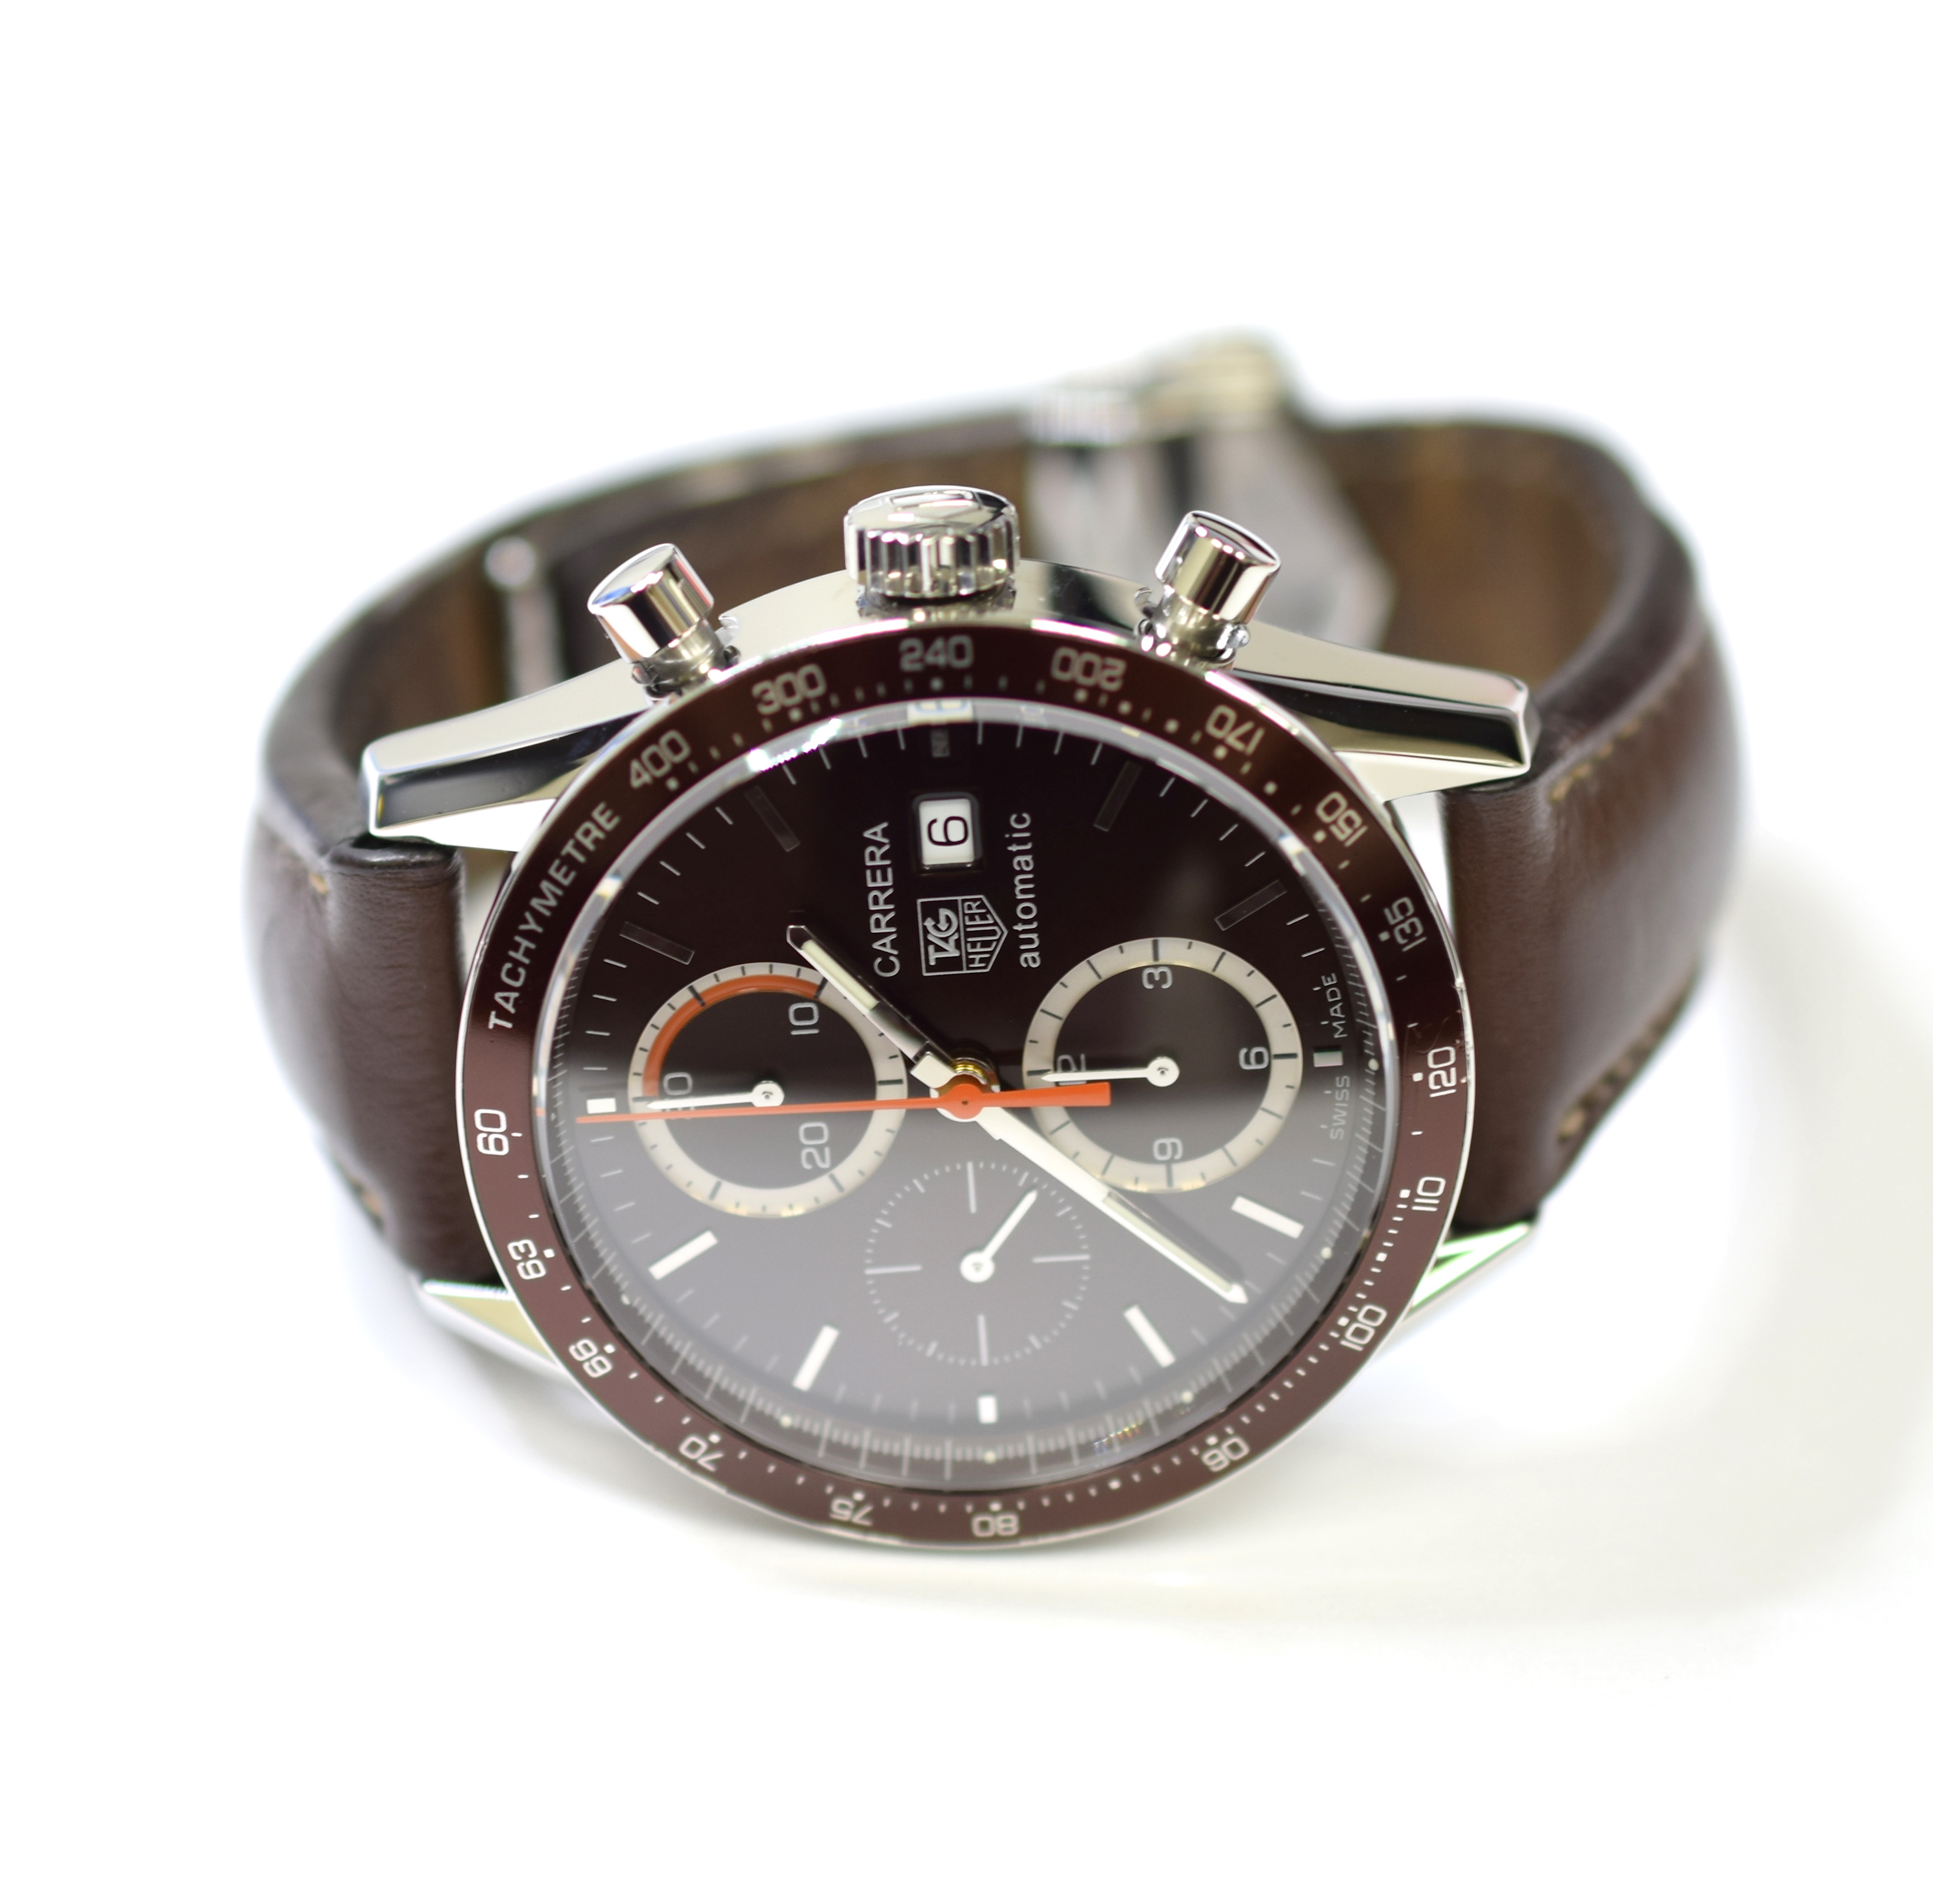 Tag Heuer Carrera Chronograph 41 5mm Stainless Steel Mens Watch On Leather Strap